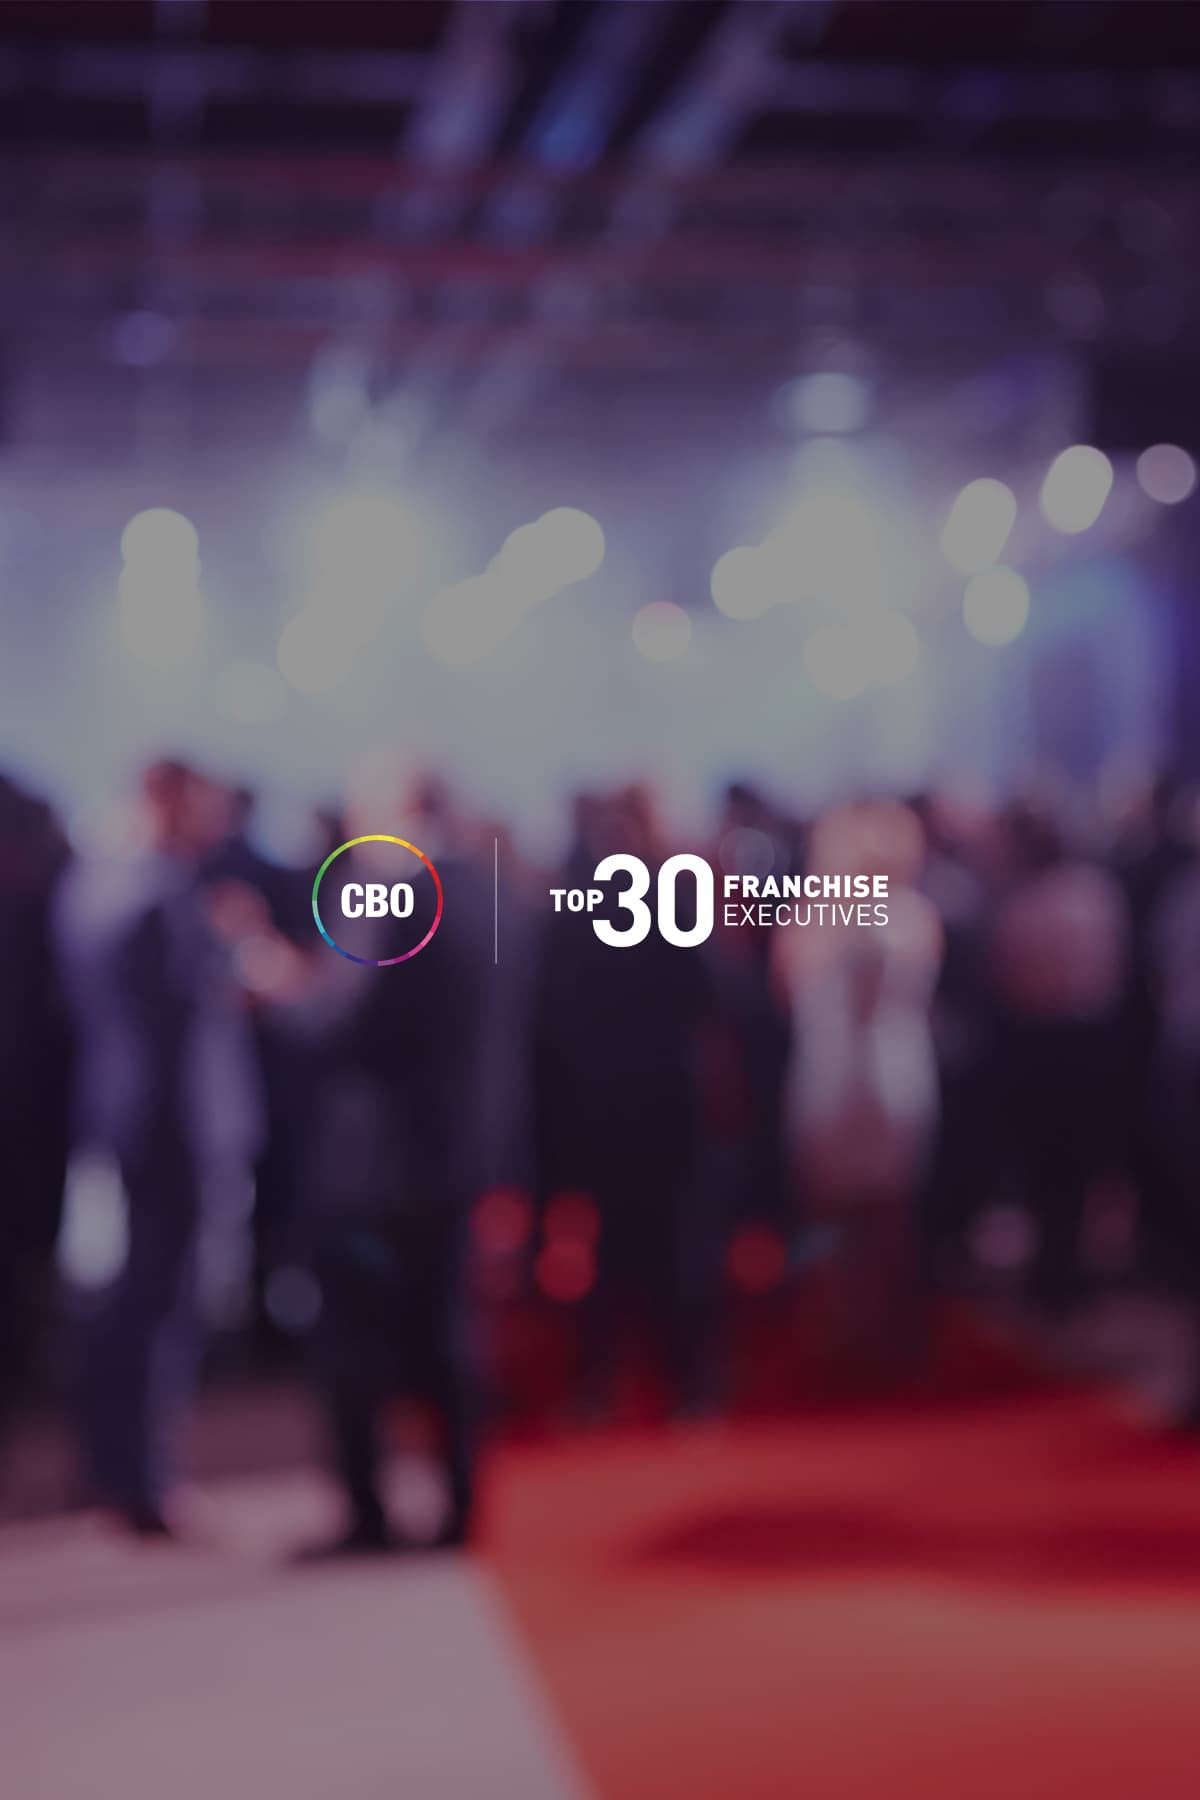 Top 30 Franchise Executives 2019 - EventSponsored by CBO